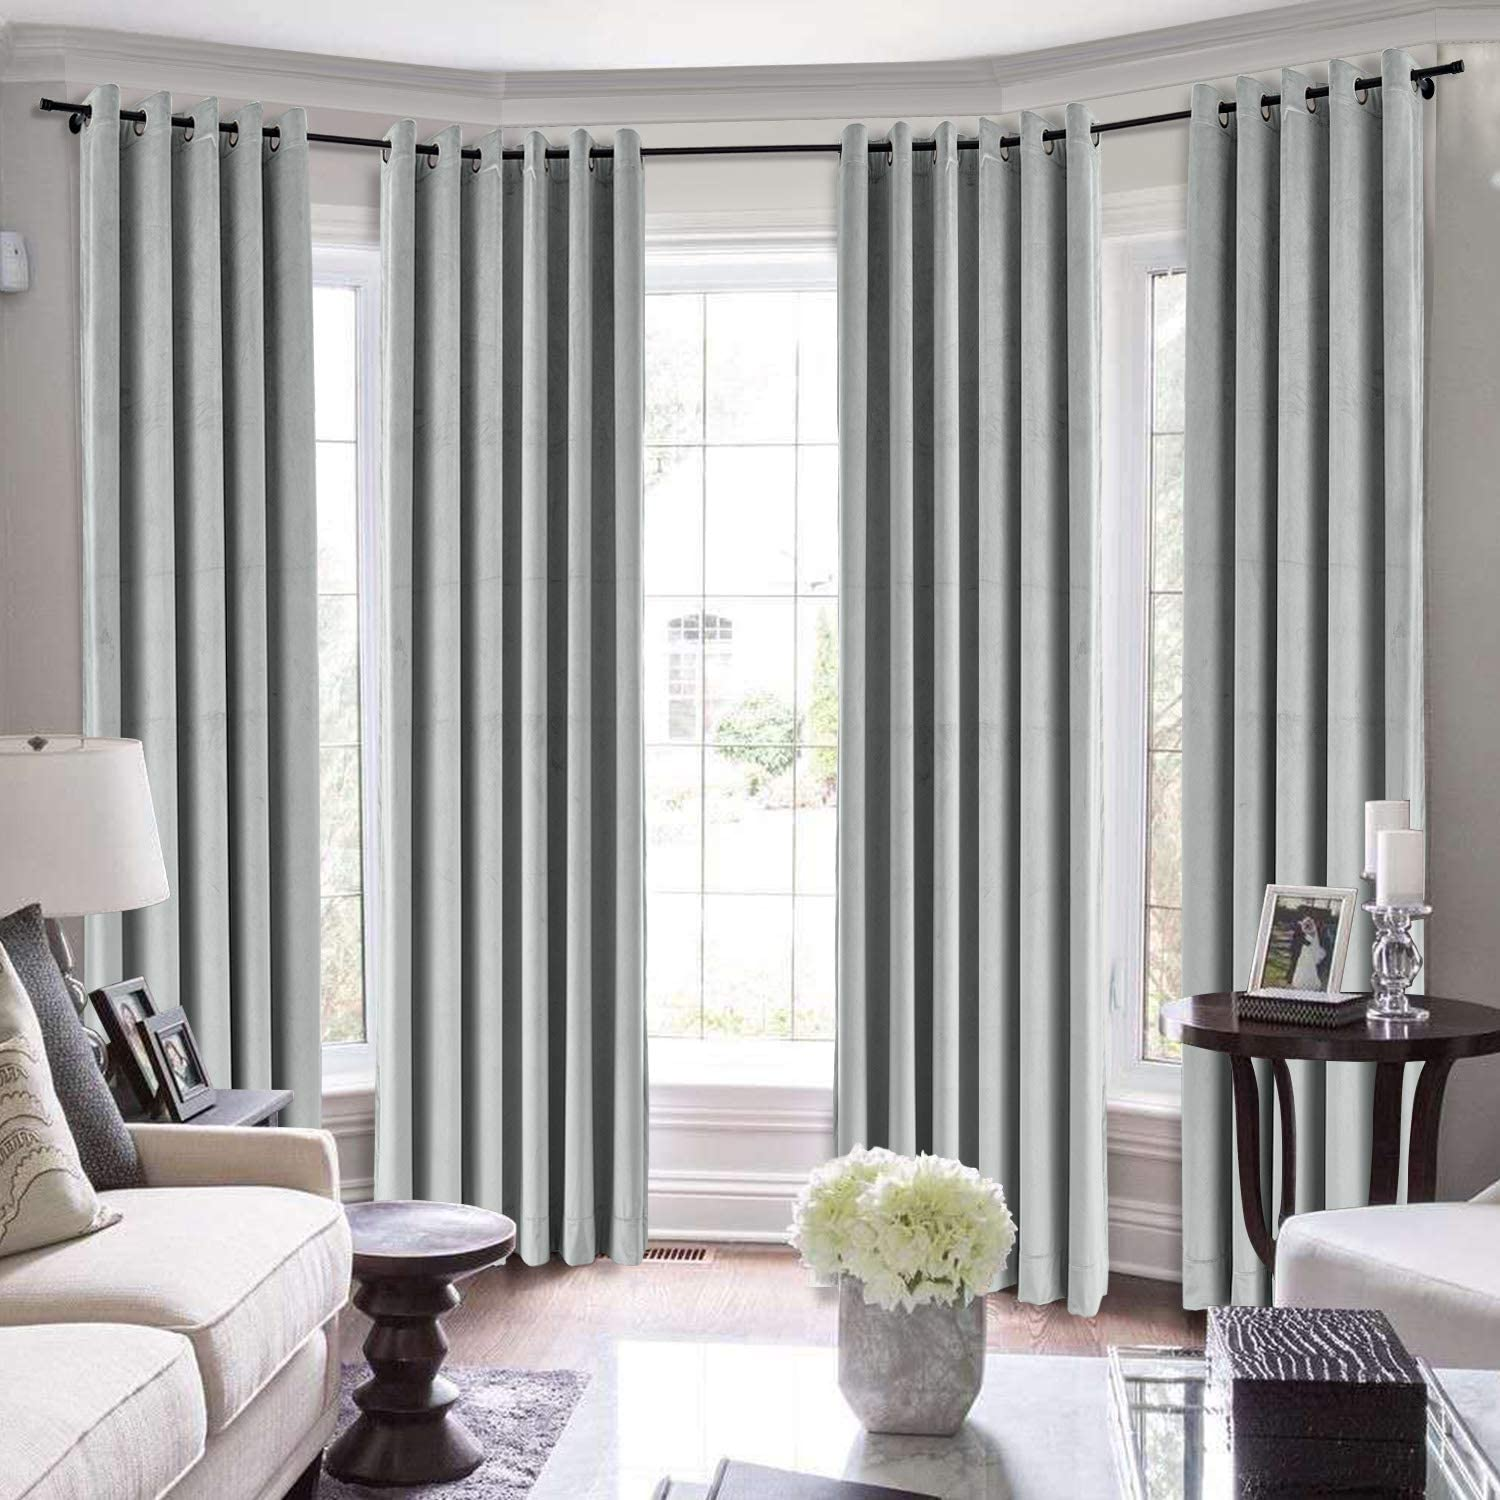 TWOPAGES Heavyweight Blackout Nickel Curtain Sales Extra Brand new Long Grommet